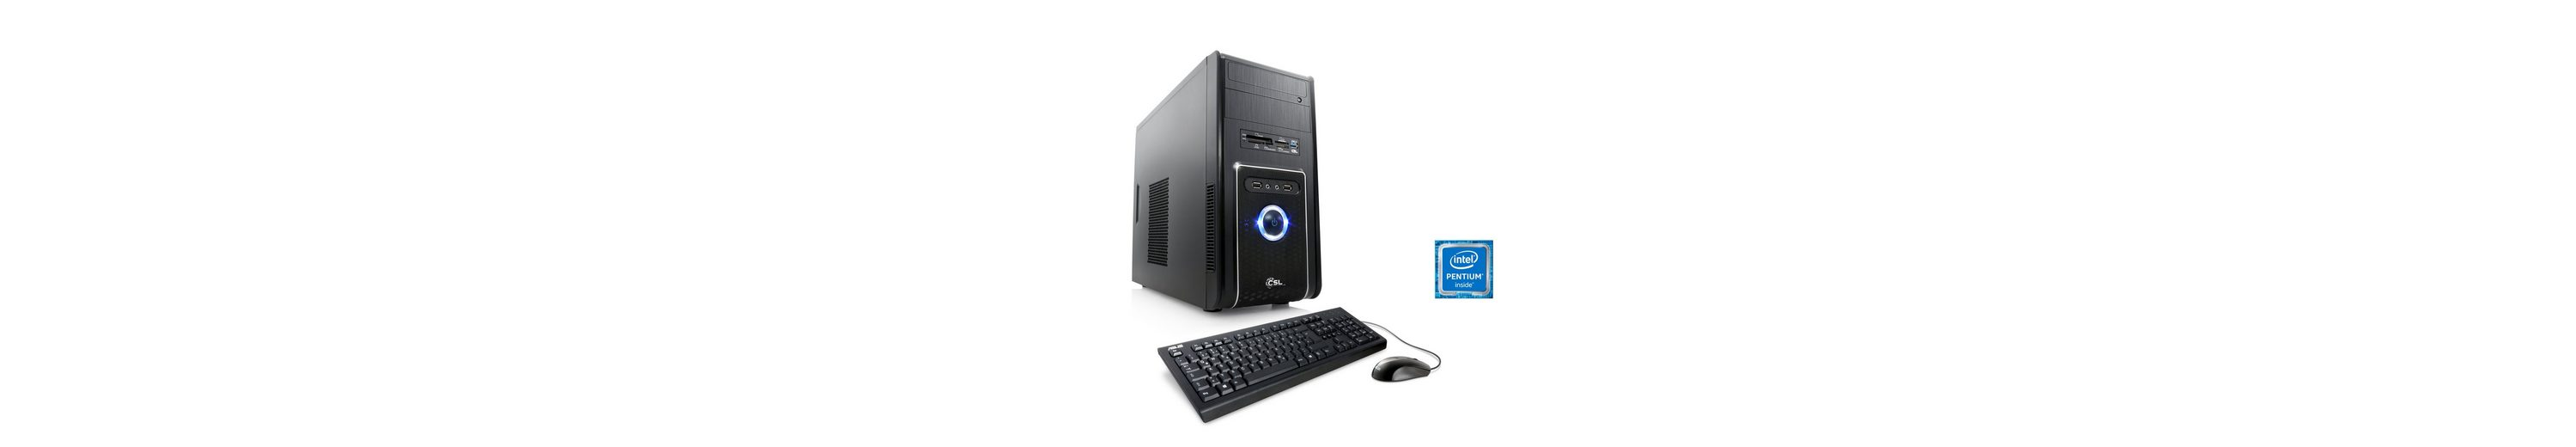 CSL Multimedia PC | Pentium G4400 | Intel HD 510 | 8 GB RAM »Speed T1822 Windows 10 Home«